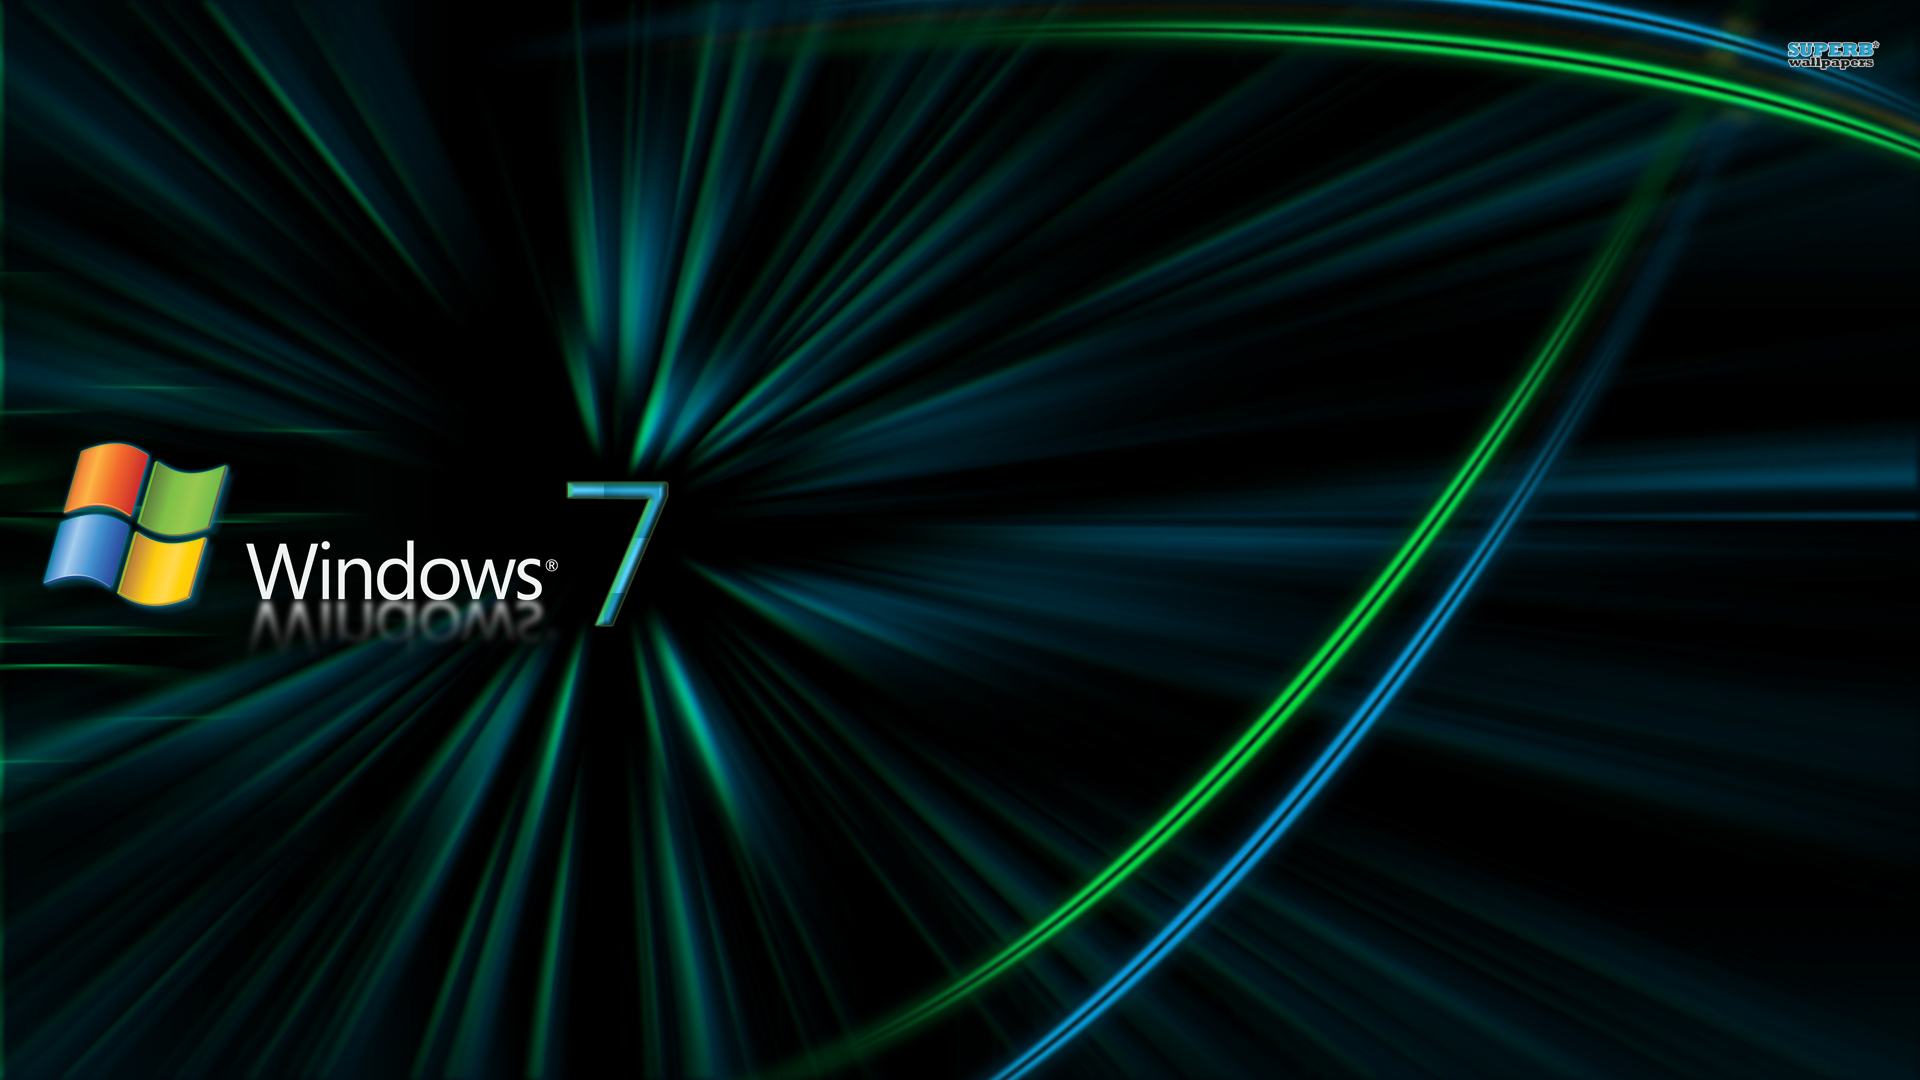 Windows 7 Color Wallpaper 17405 Wallpaper High Resolution Wallarthd 1920x1080